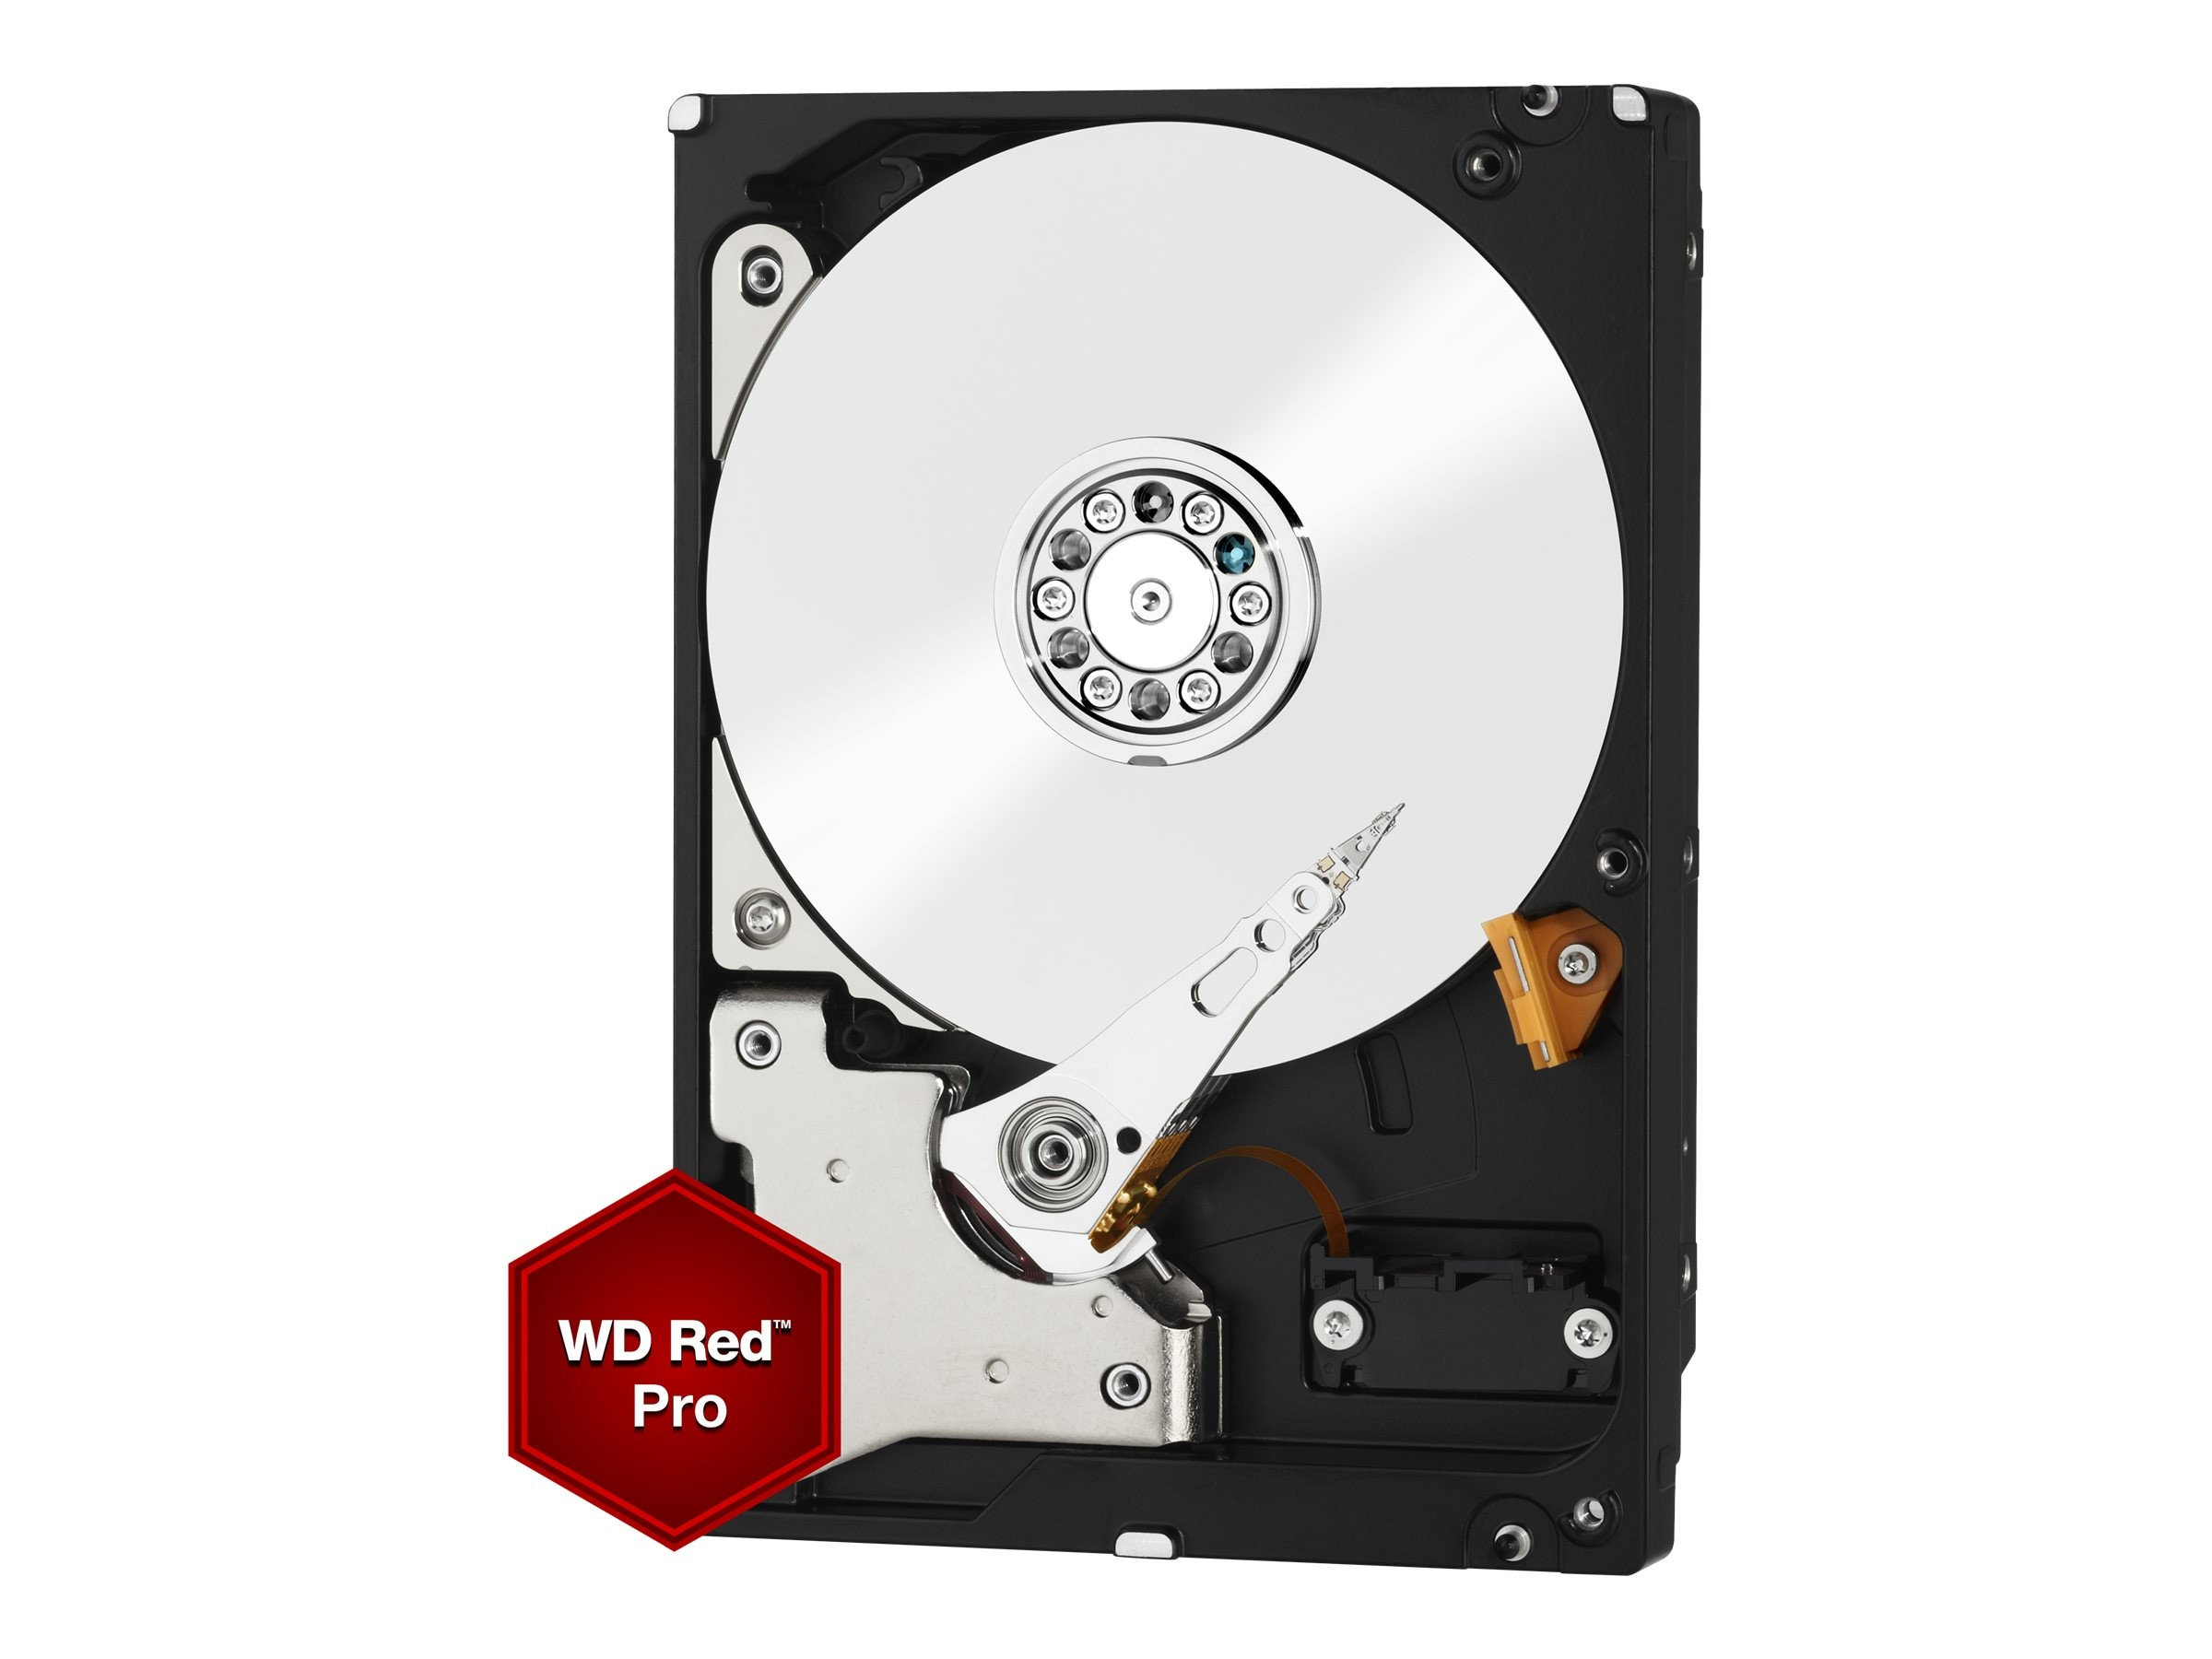 WD 4TB WD Red Pro SATA 6Gb s 3.5 Internal Hard Drive - 64MB Cache, WD4001FFSX, 17590289, Hard Drives - Internal